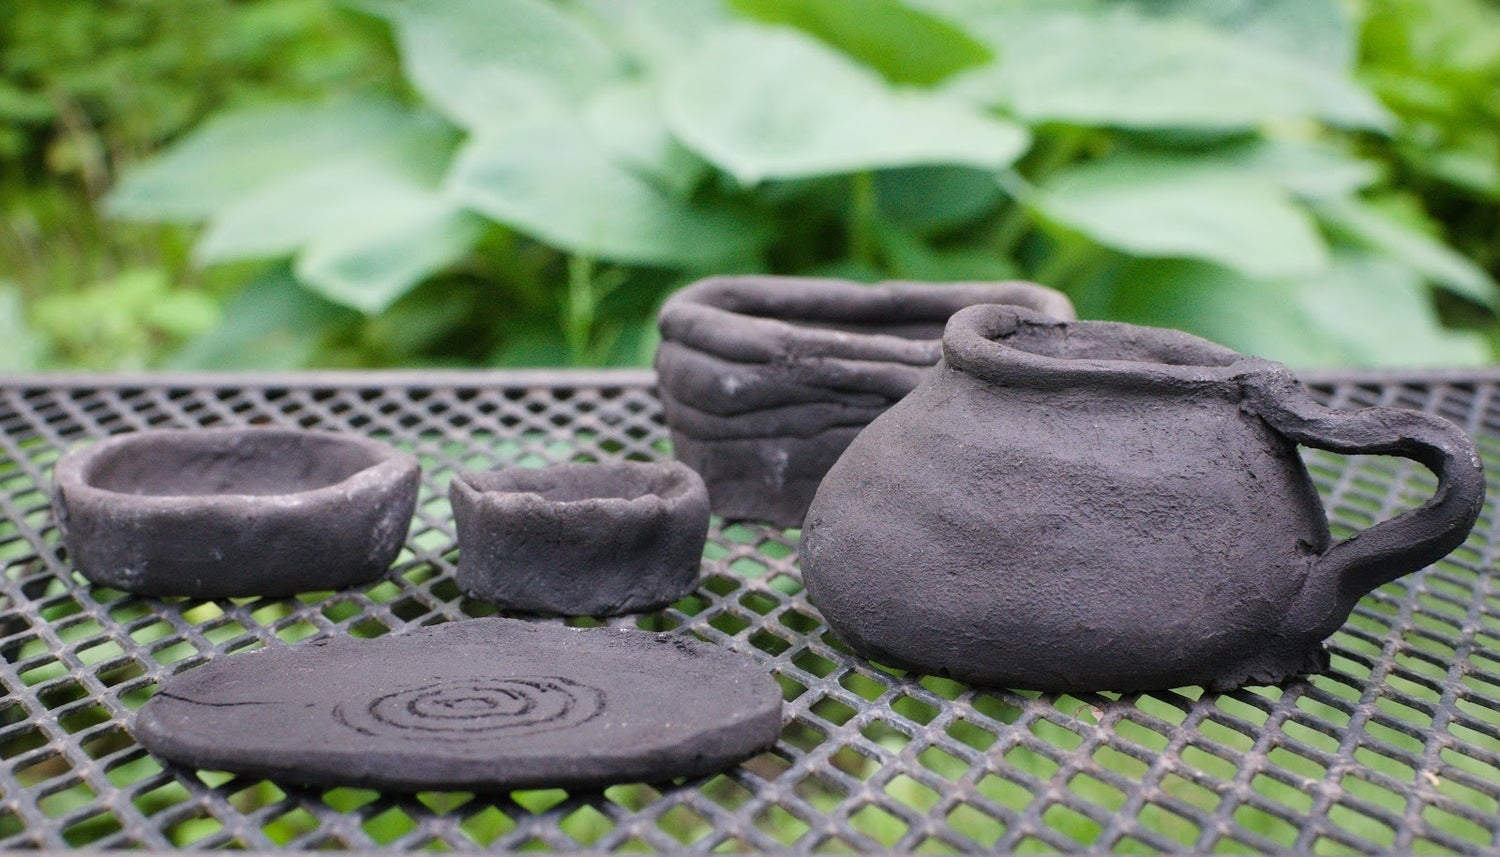 How to make pottery from scratch